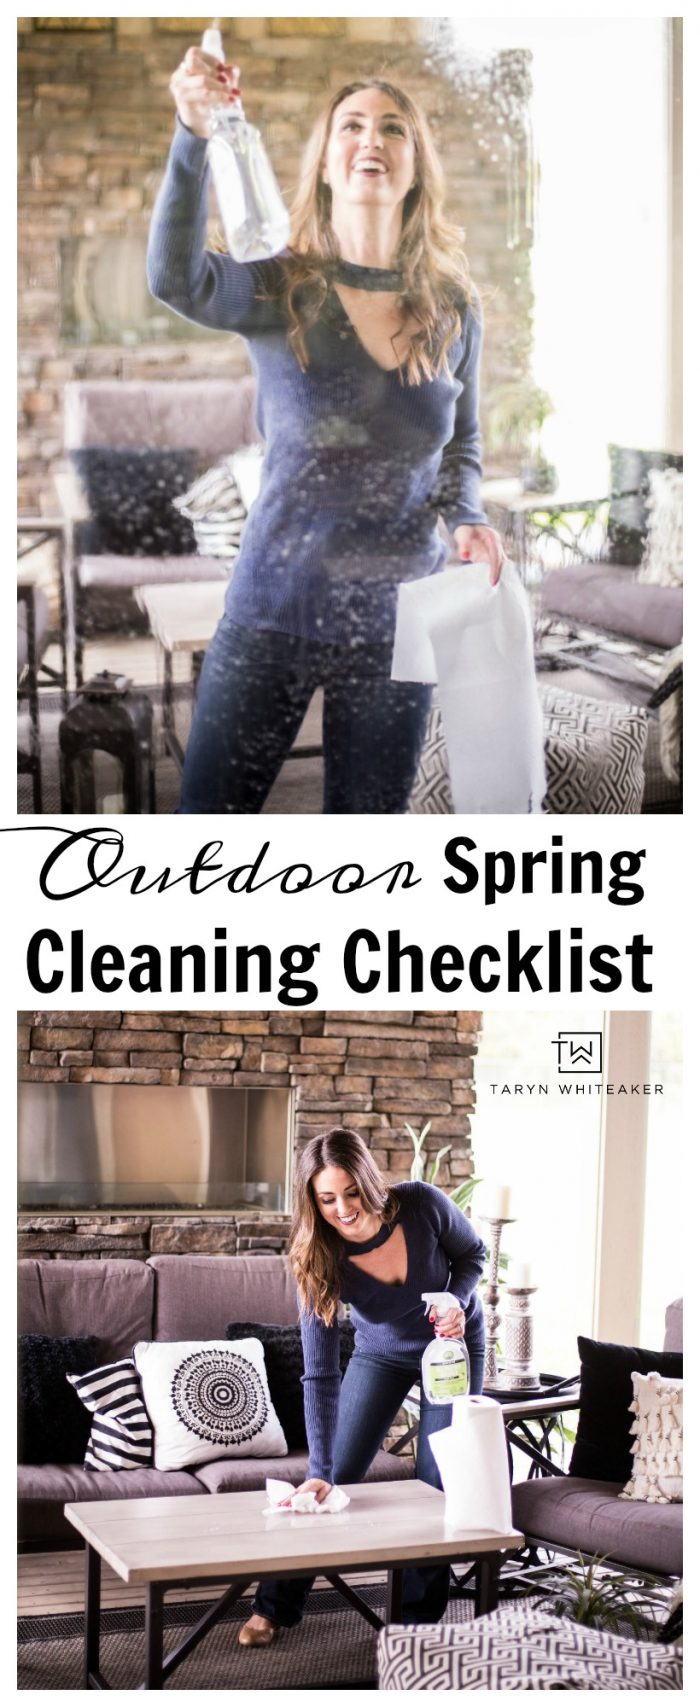 Get your back patio ready for spring! Here is an easy Outdoor Spring Cleaning Checklist to help you freshen up your space for outdoor entertaining.